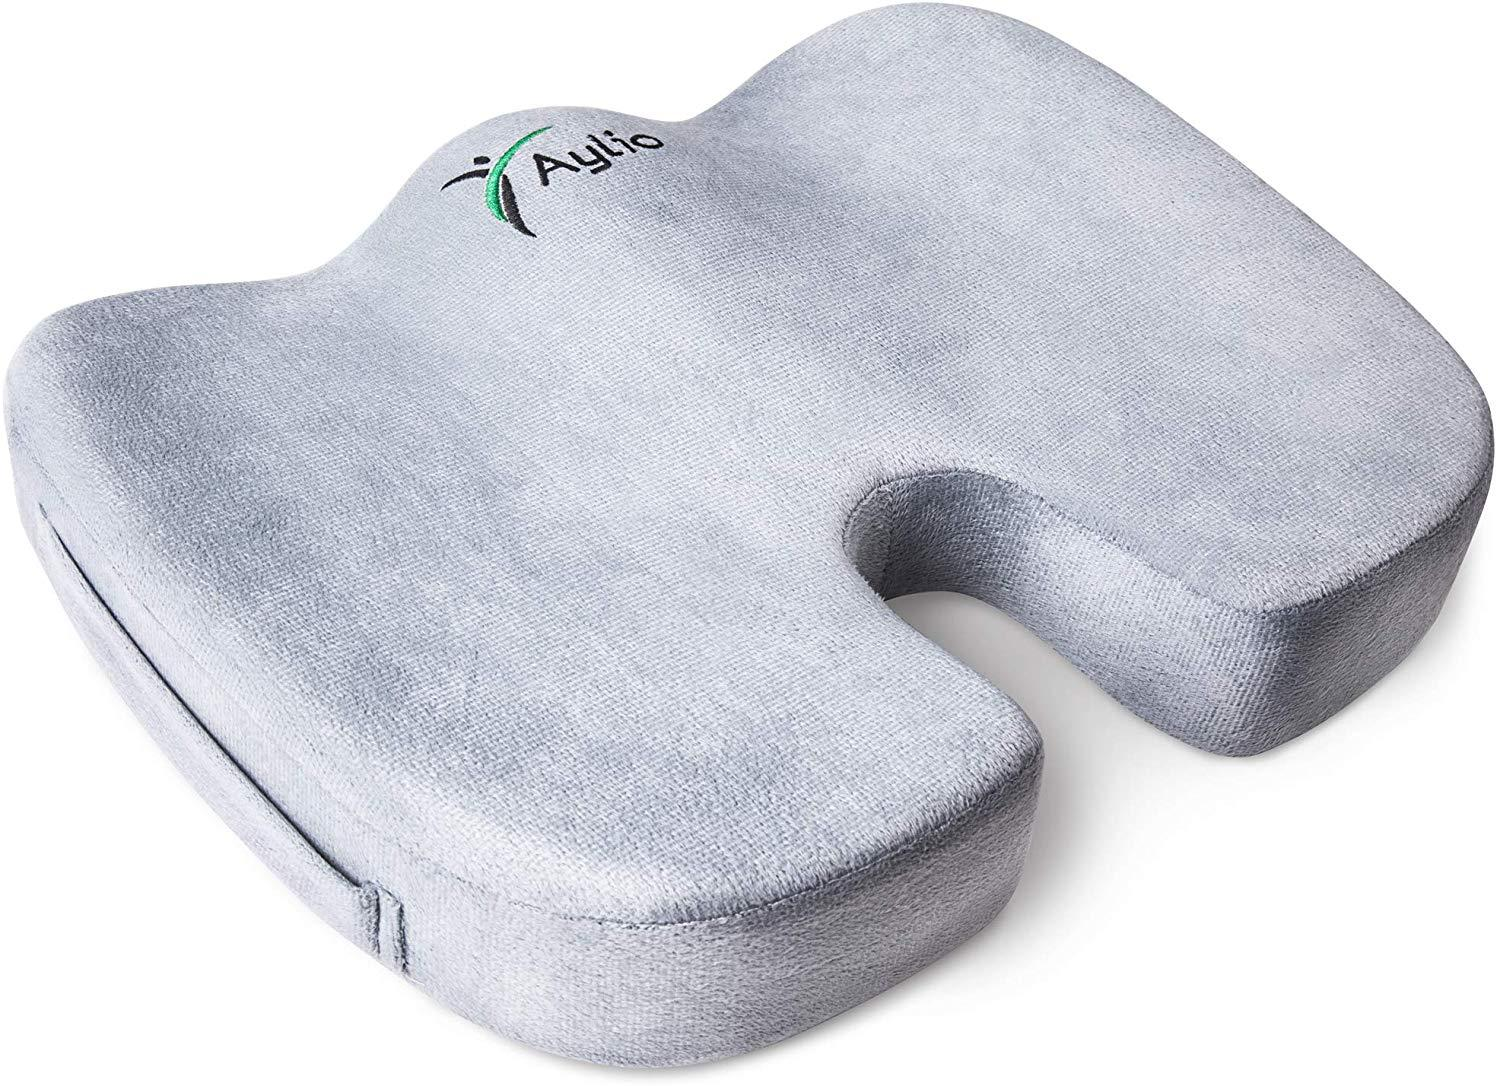 best car seat cushion for long drive